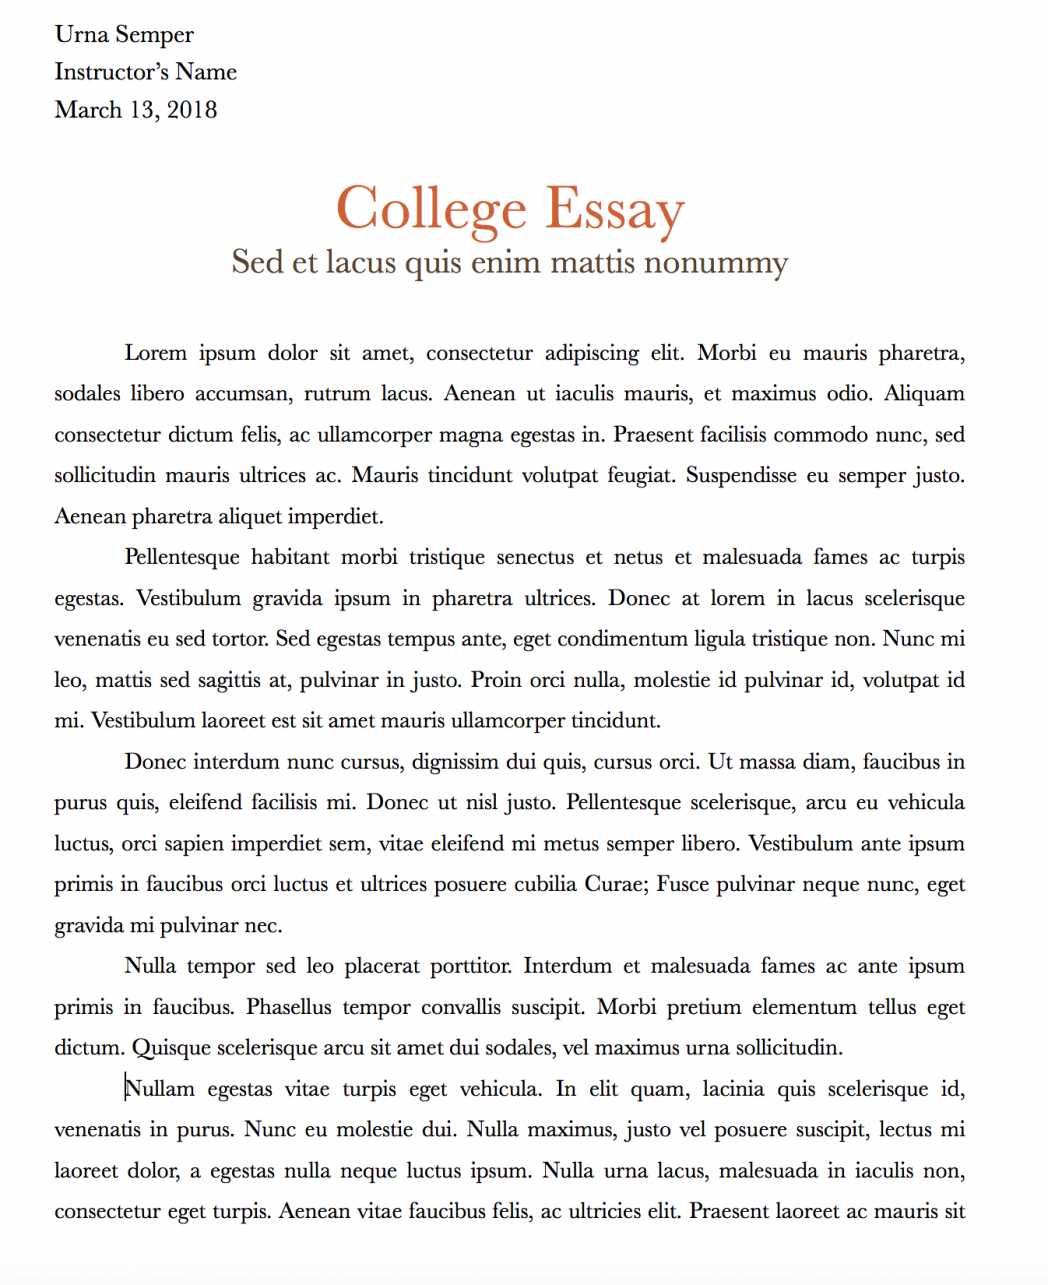 001 Essay Example How To Start Off College Write An Interesting And Captivating Examples Ctwrvkoshcimzkxyhyl8 With Parag Scholarship About Best A Full